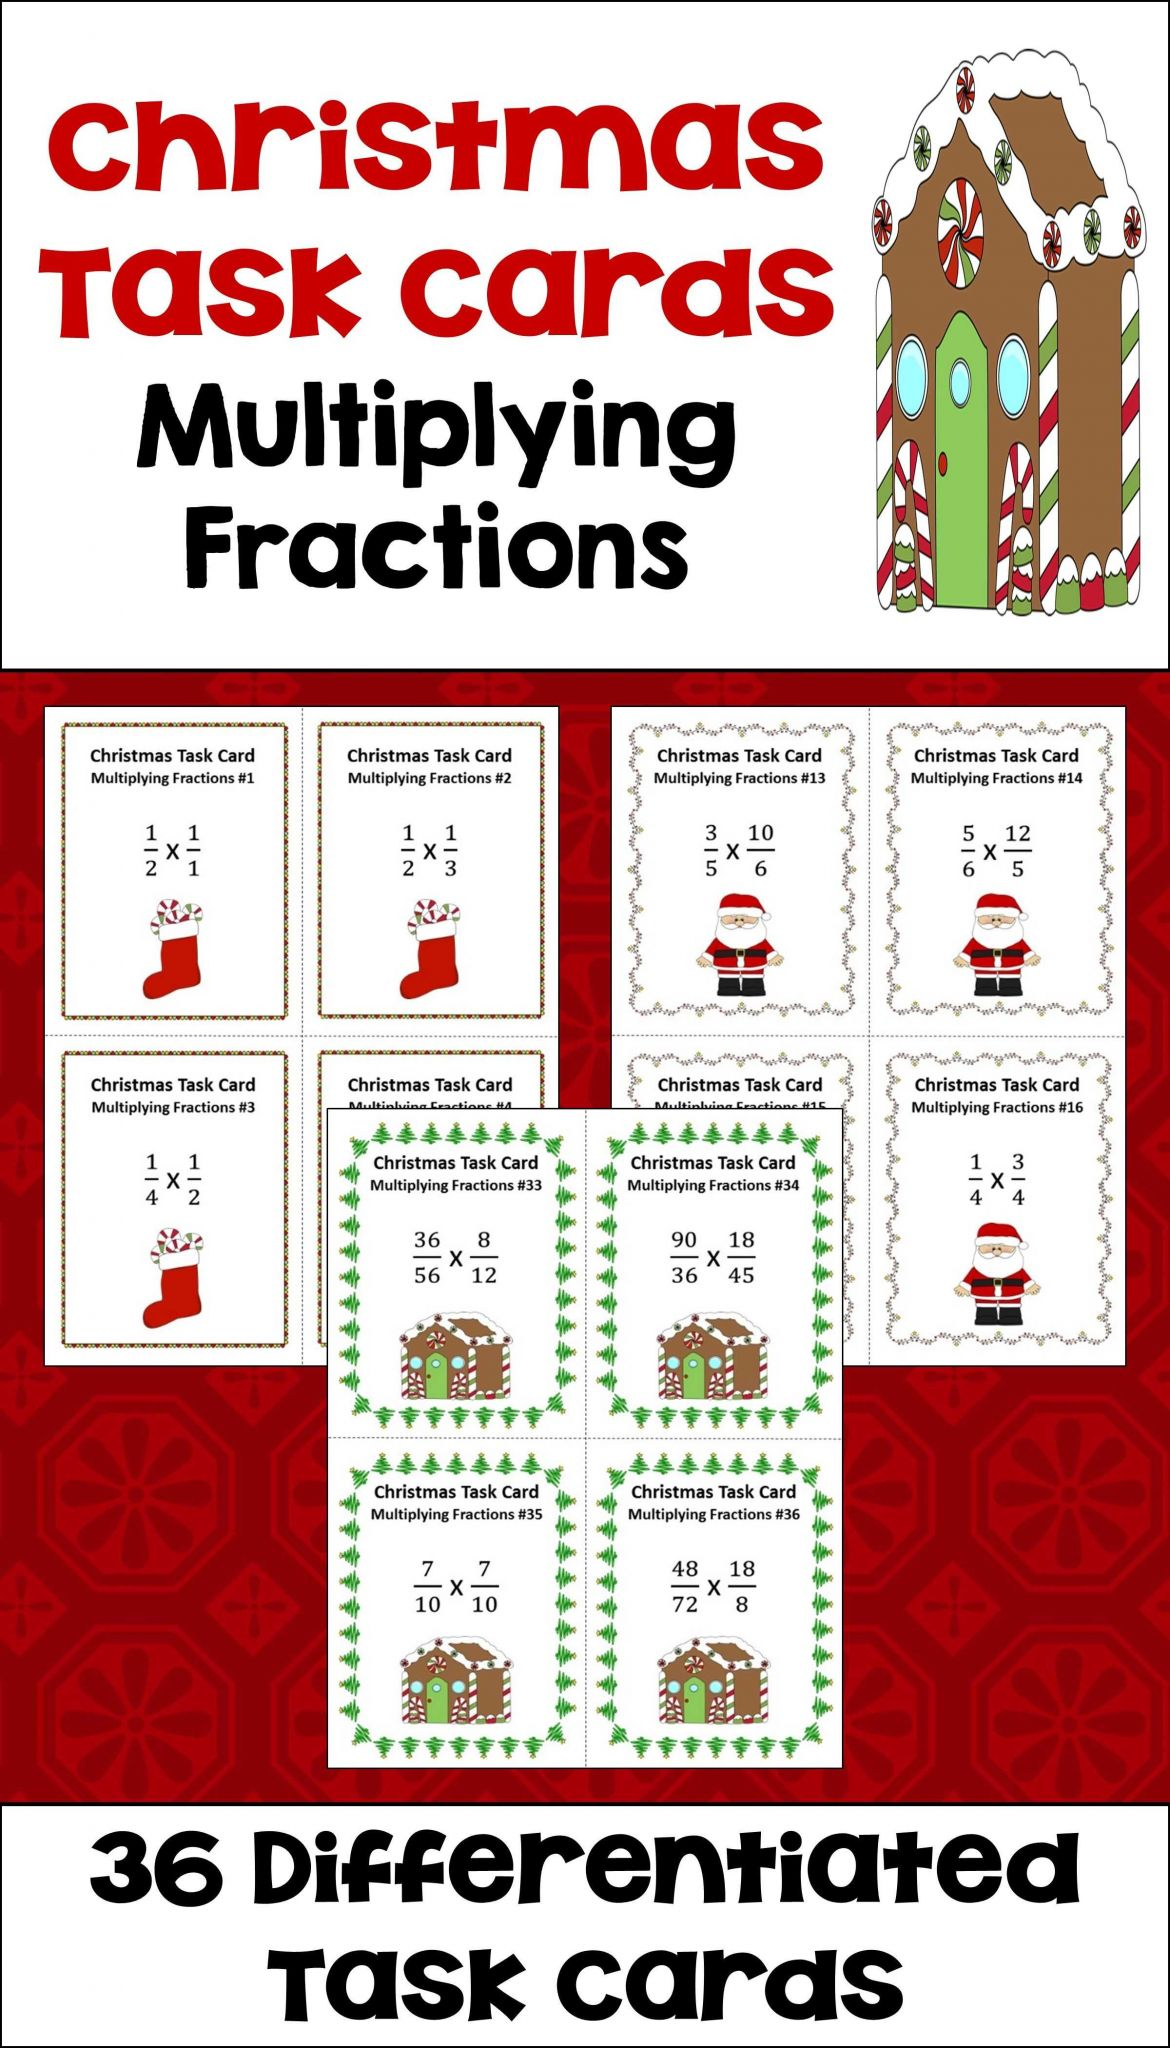 Staying On Task Worksheets together with Christmas Multiplying Fractions Task Cards Differentiated with 3